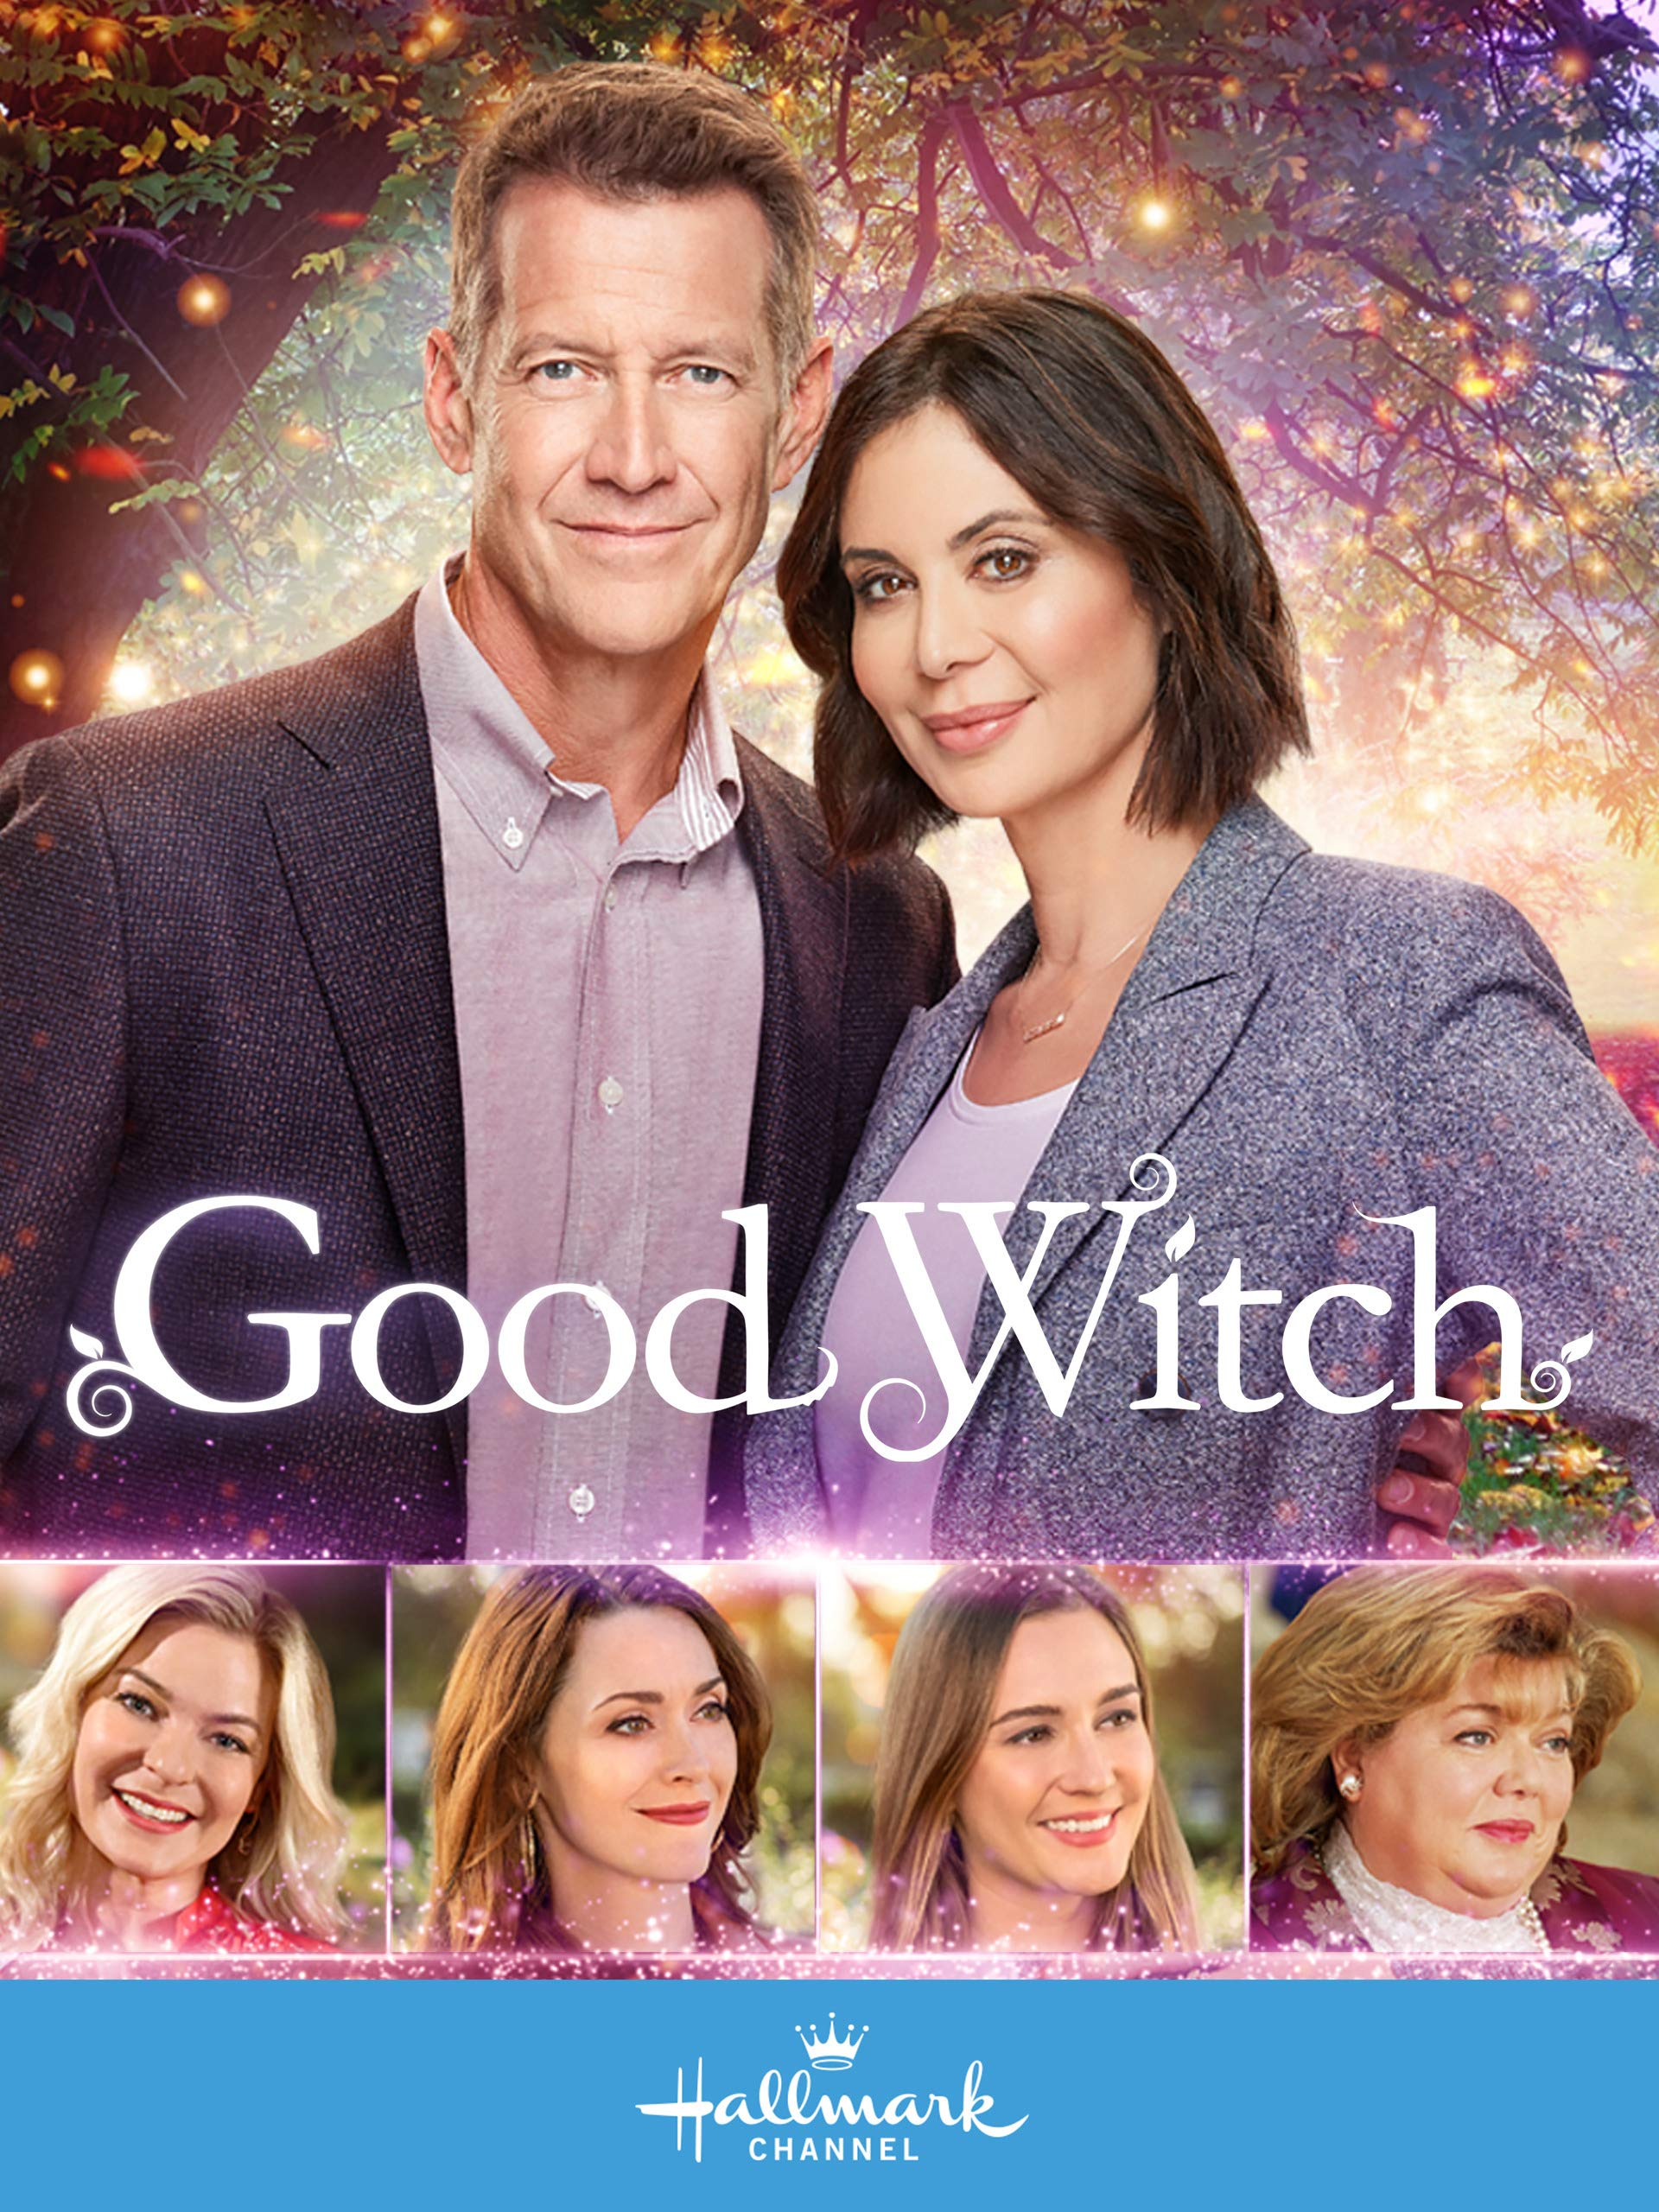 Good Witch Halloween Special 2020 Date Watch Good Witch, Season 6 | Prime Video